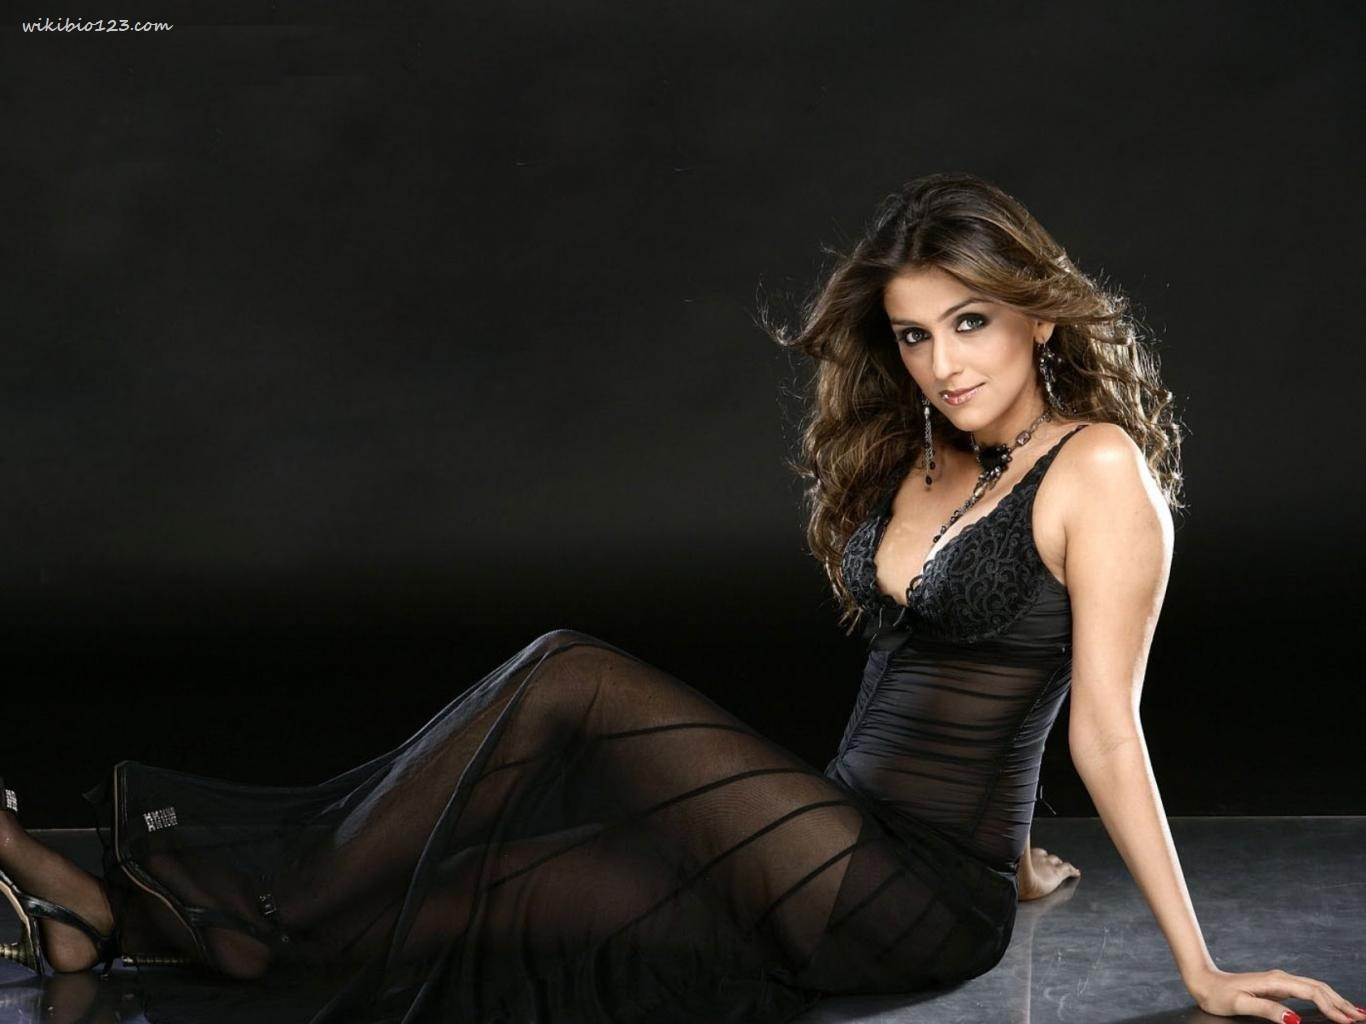 Aarti Chabria wiki Bio Age Figure size Height HD Images Wallpapers Download